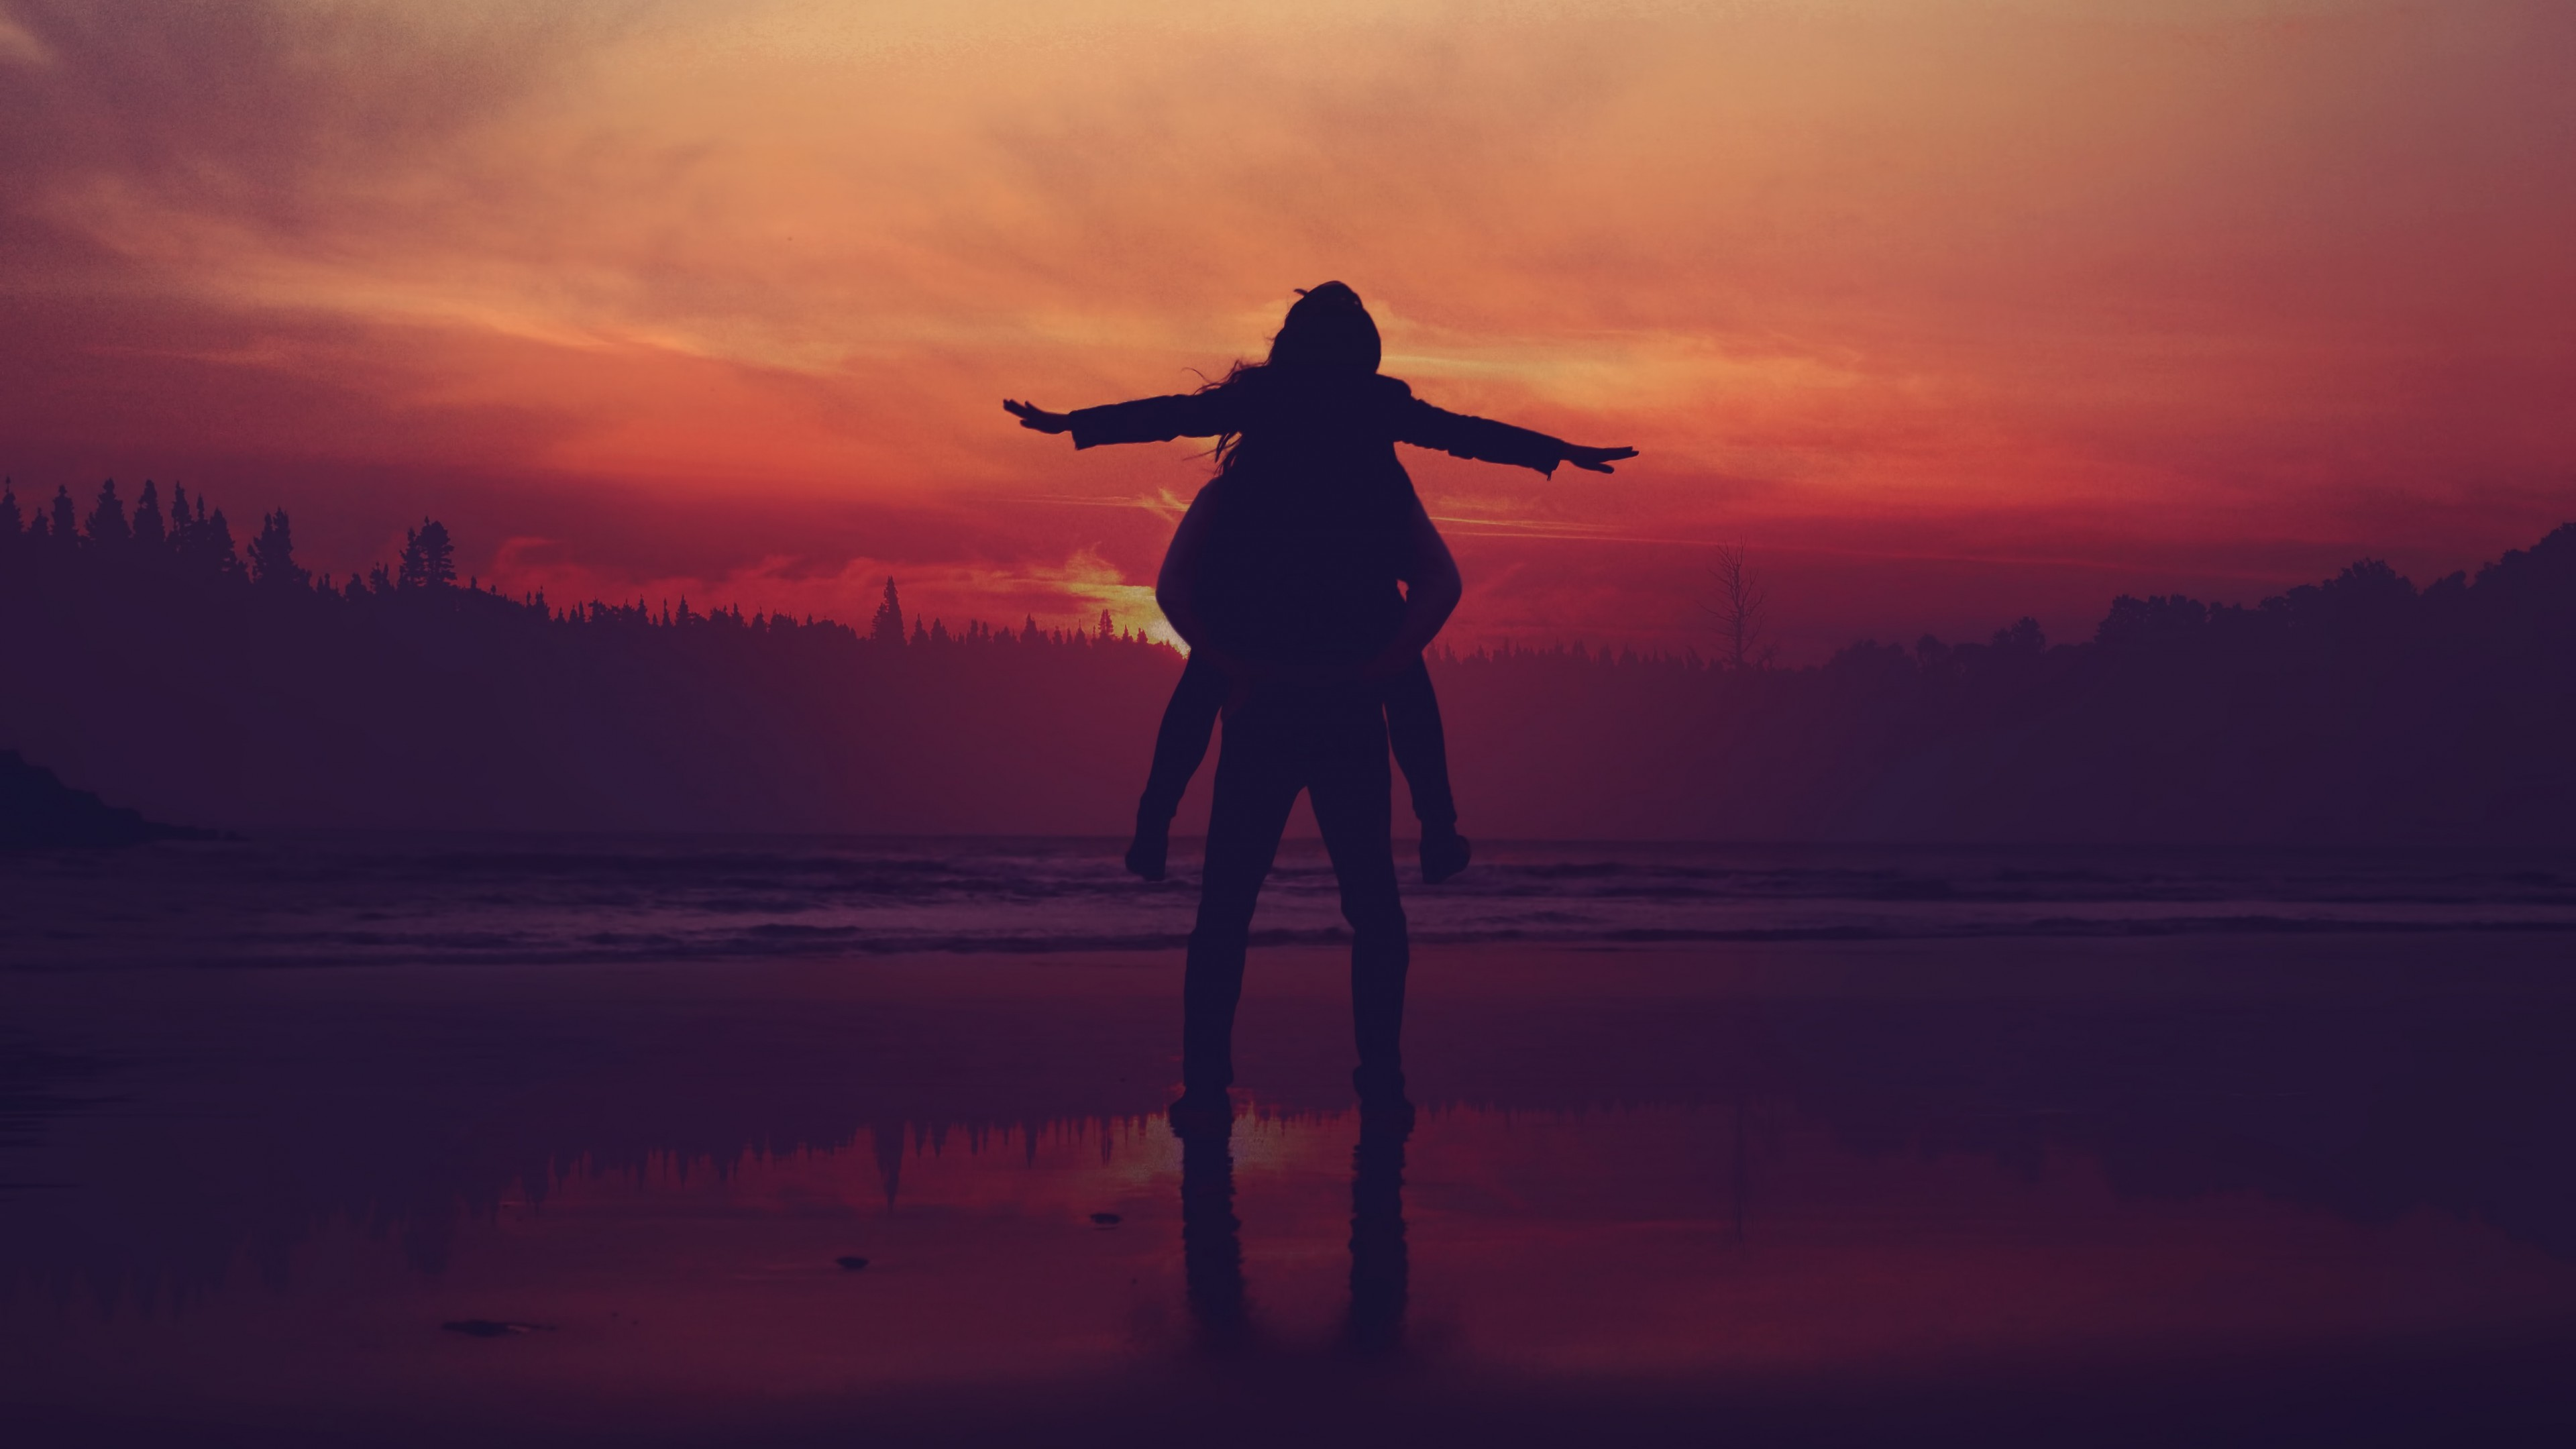 Amazing Sunset Seaside Couple Love Silhouette